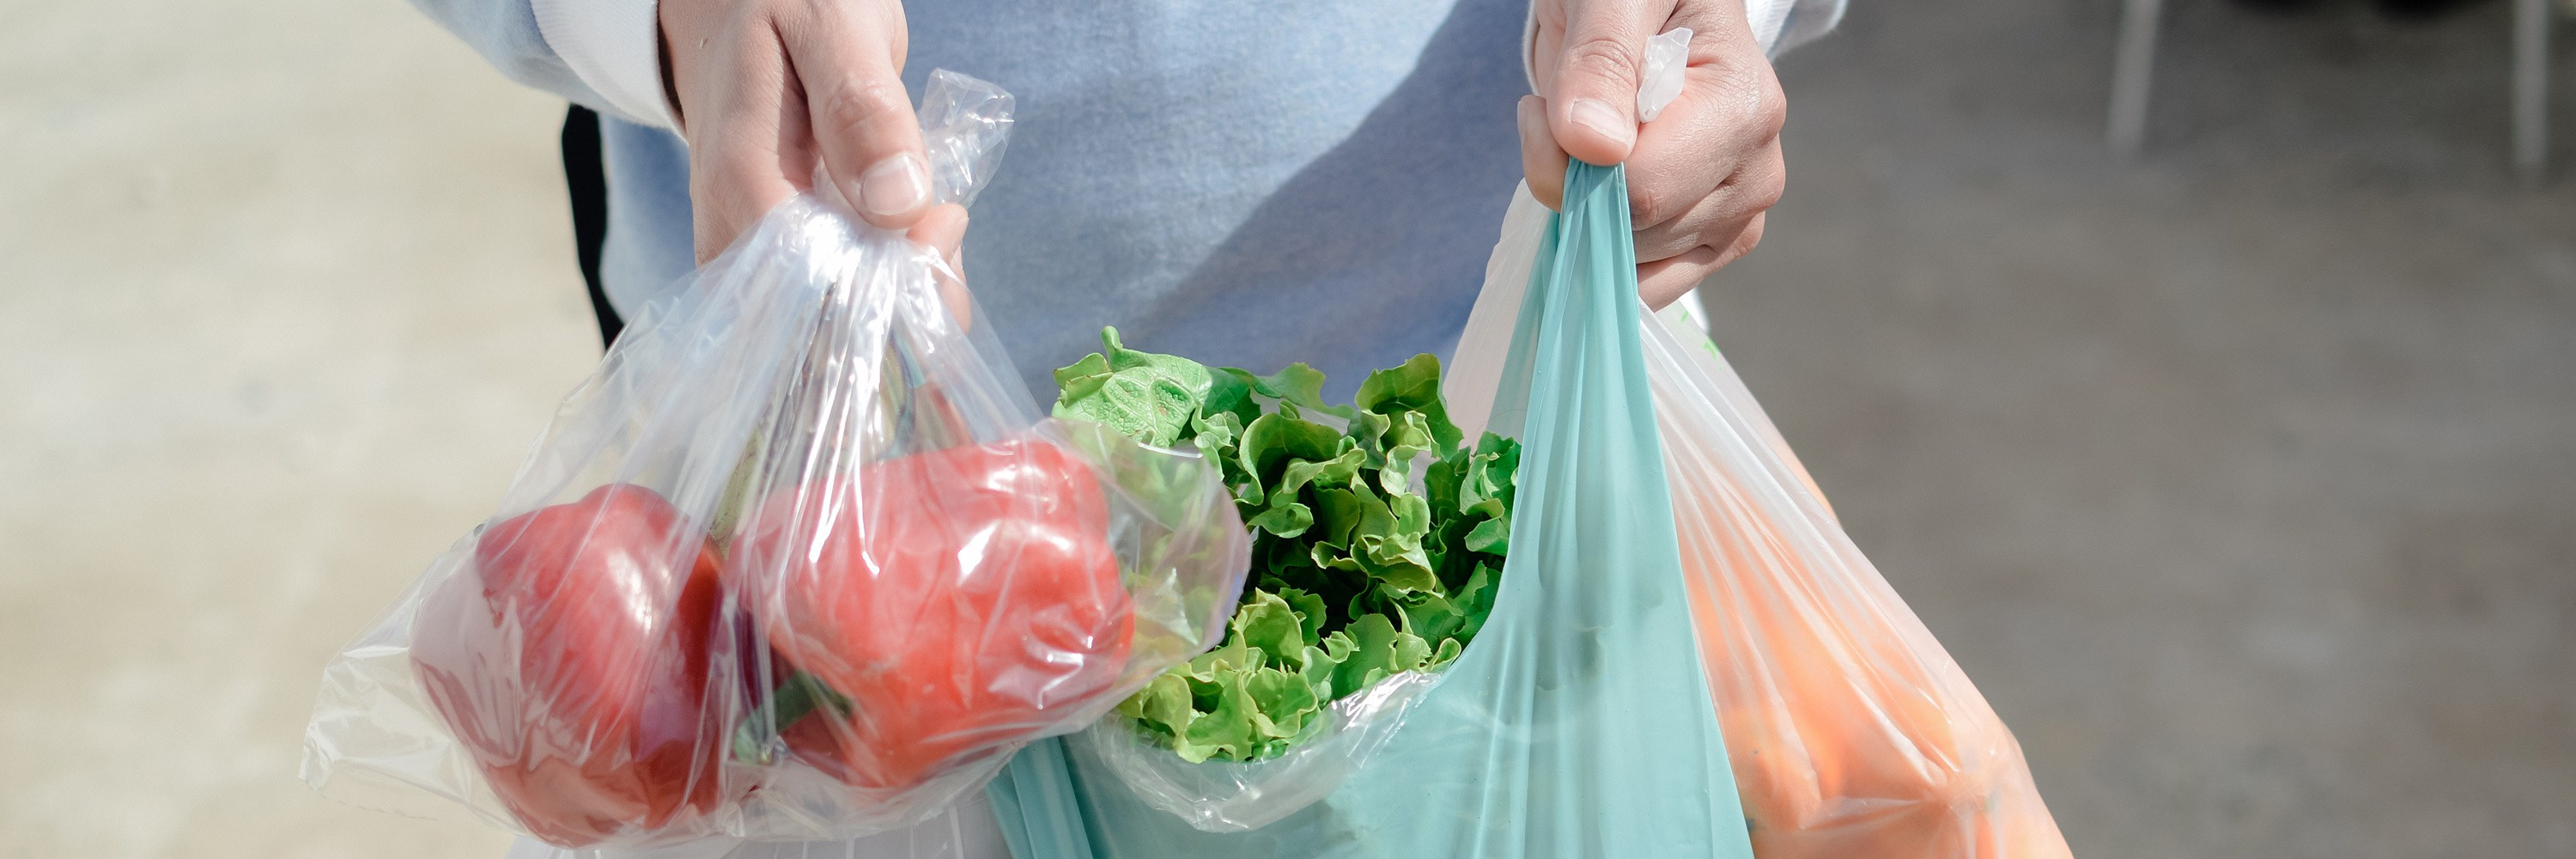 Vegetables in plastic bags. Photo: Arimag/Shutterstock